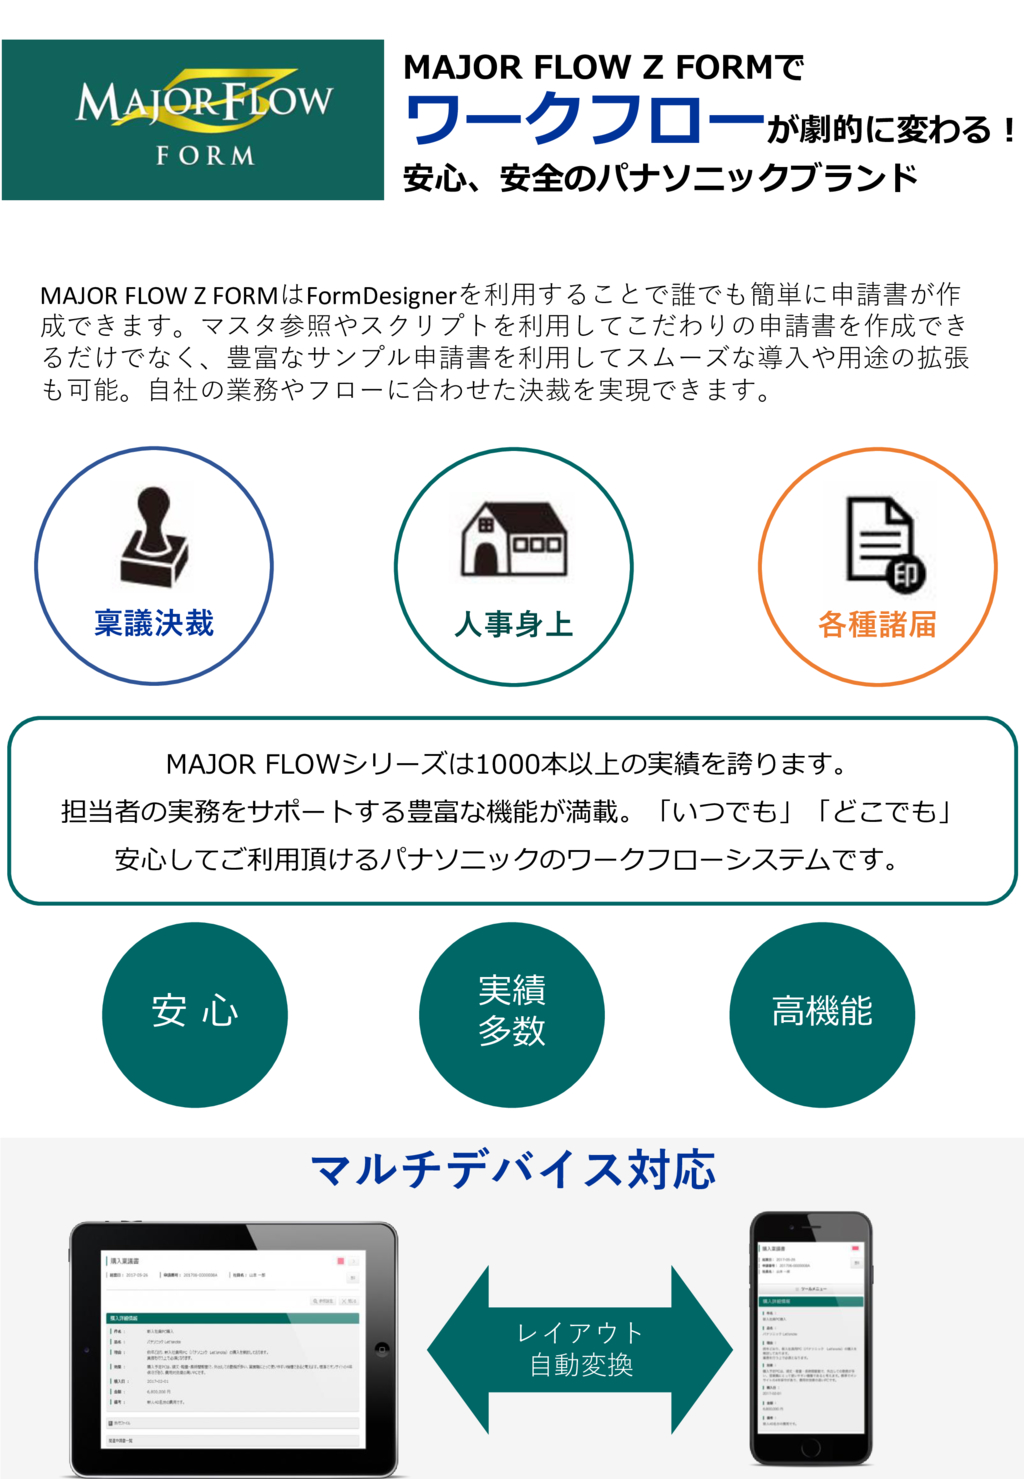 MAJOR FLOW Z FORMの資料